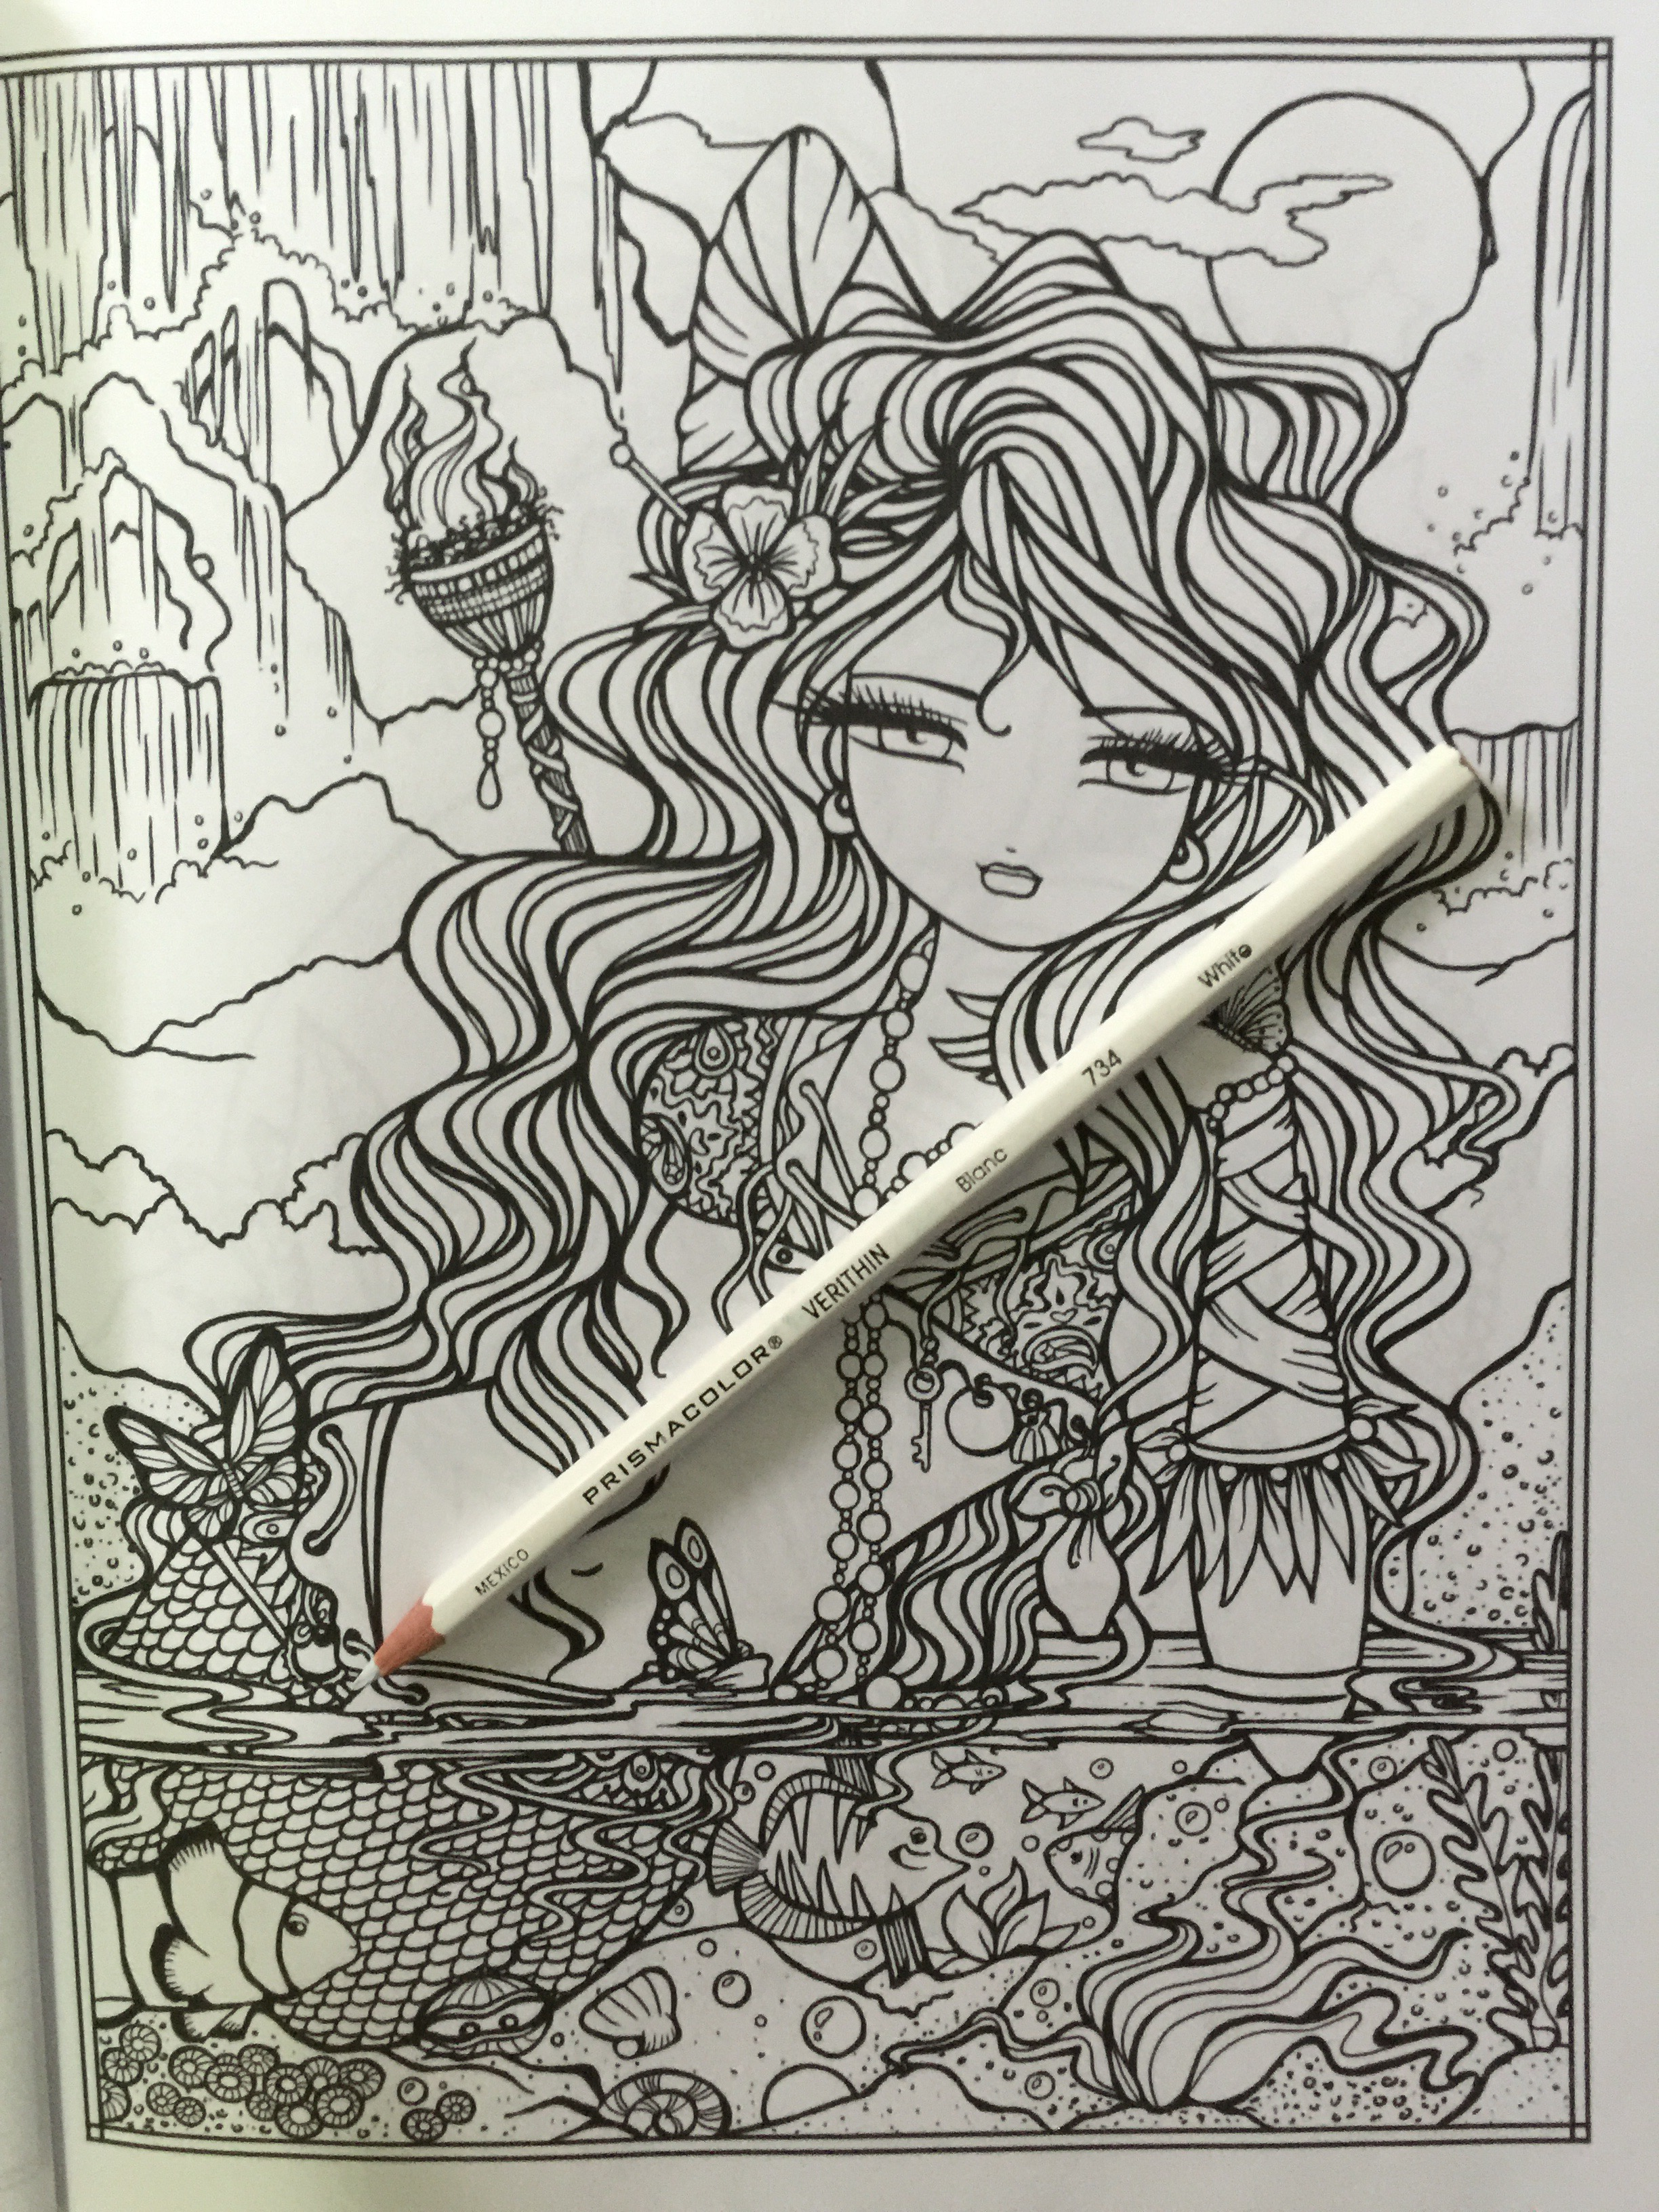 coloring colouring hannah lynn art therapy fantasy fairy mermaid color adult stress relief unicorn dragon pencils